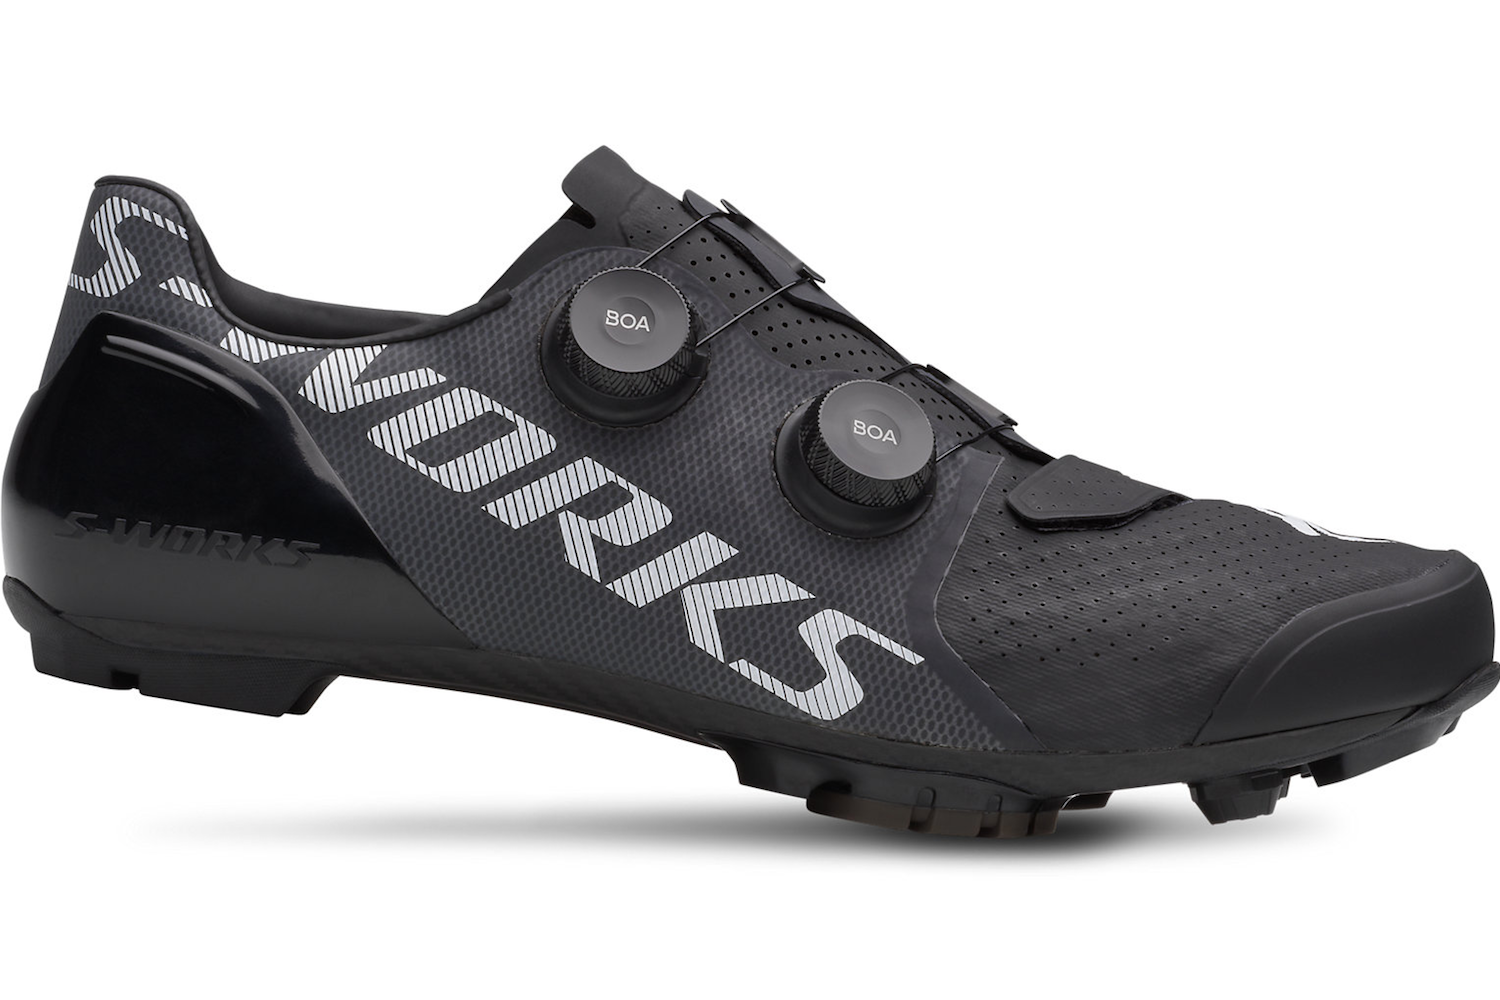 Specialized S-Works Recon shoes review